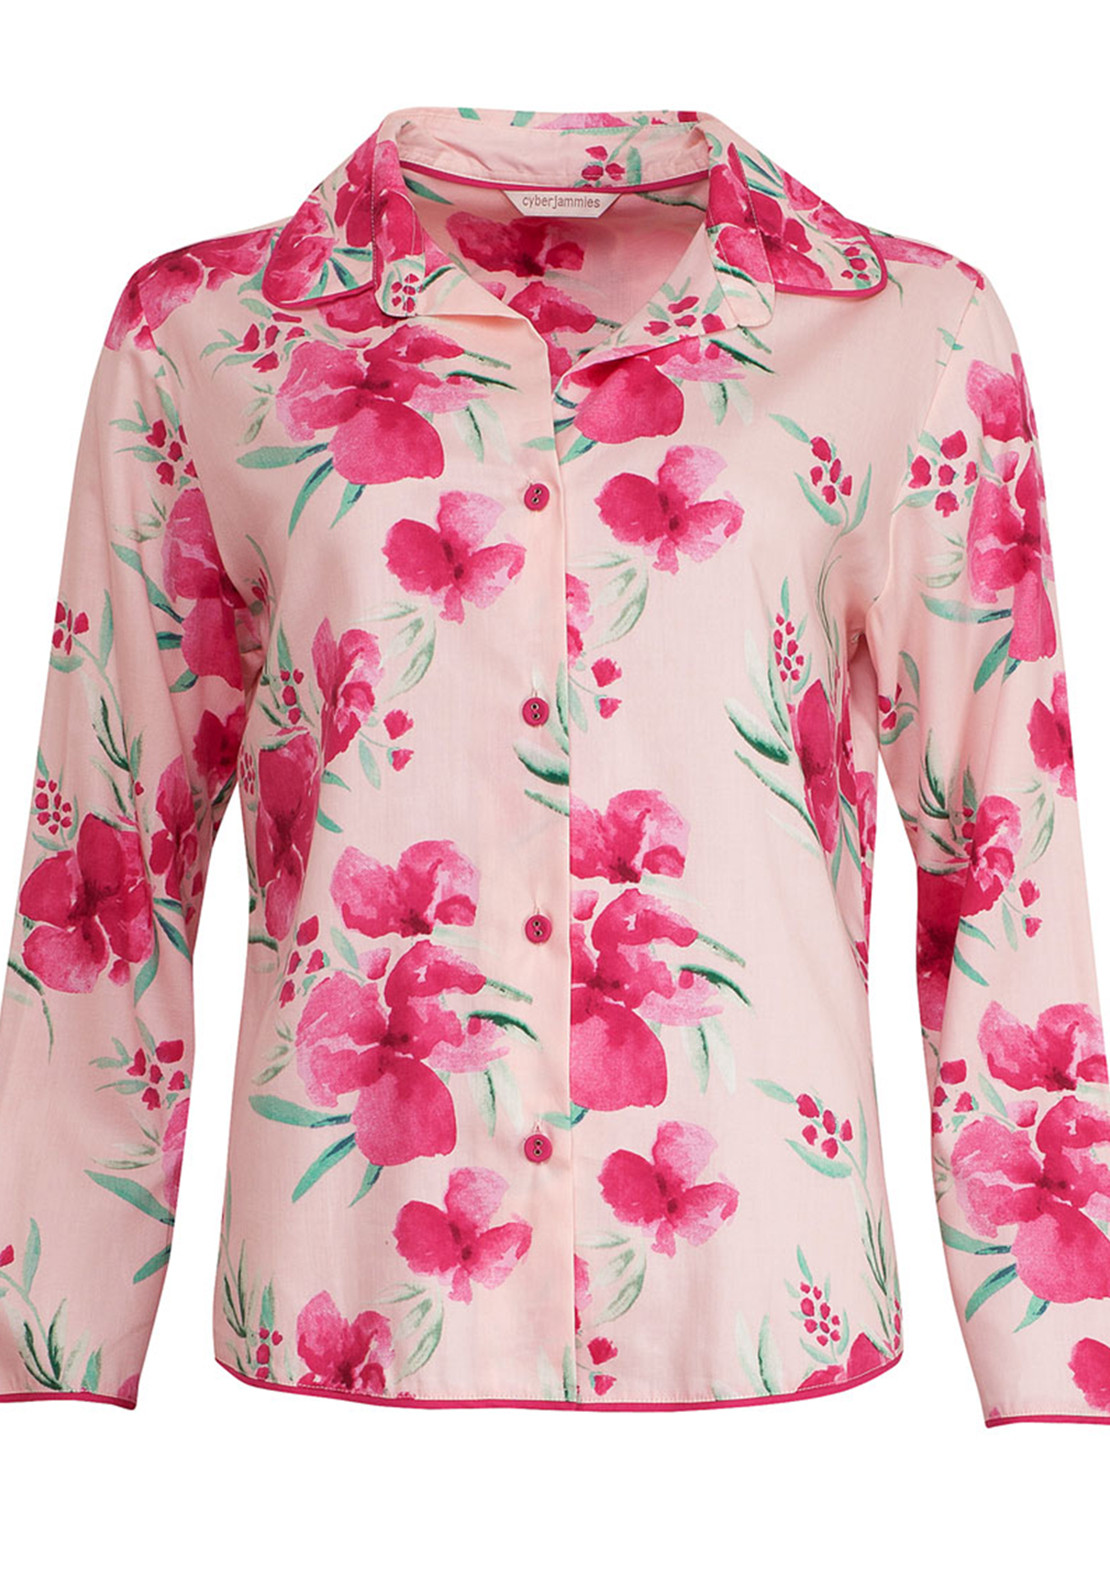 Cyberjammies South Pacific Floral Print Pyjama Top, Pink